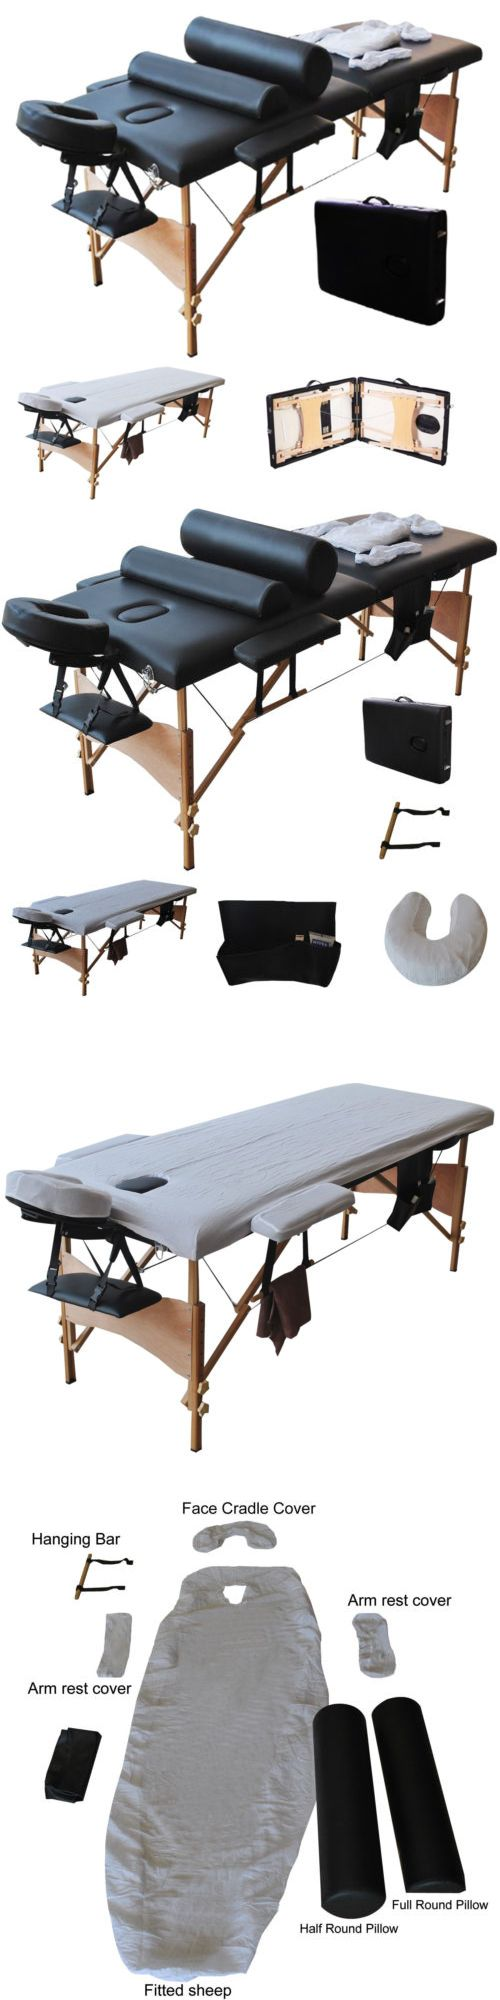 Massage Tables and Chairs: Portable 84 Massage Table Fold Facial Spa Bed W 2 Pillows+Cradle Cover+Fit Sheet -> BUY IT NOW ONLY: $105.99 on eBay!